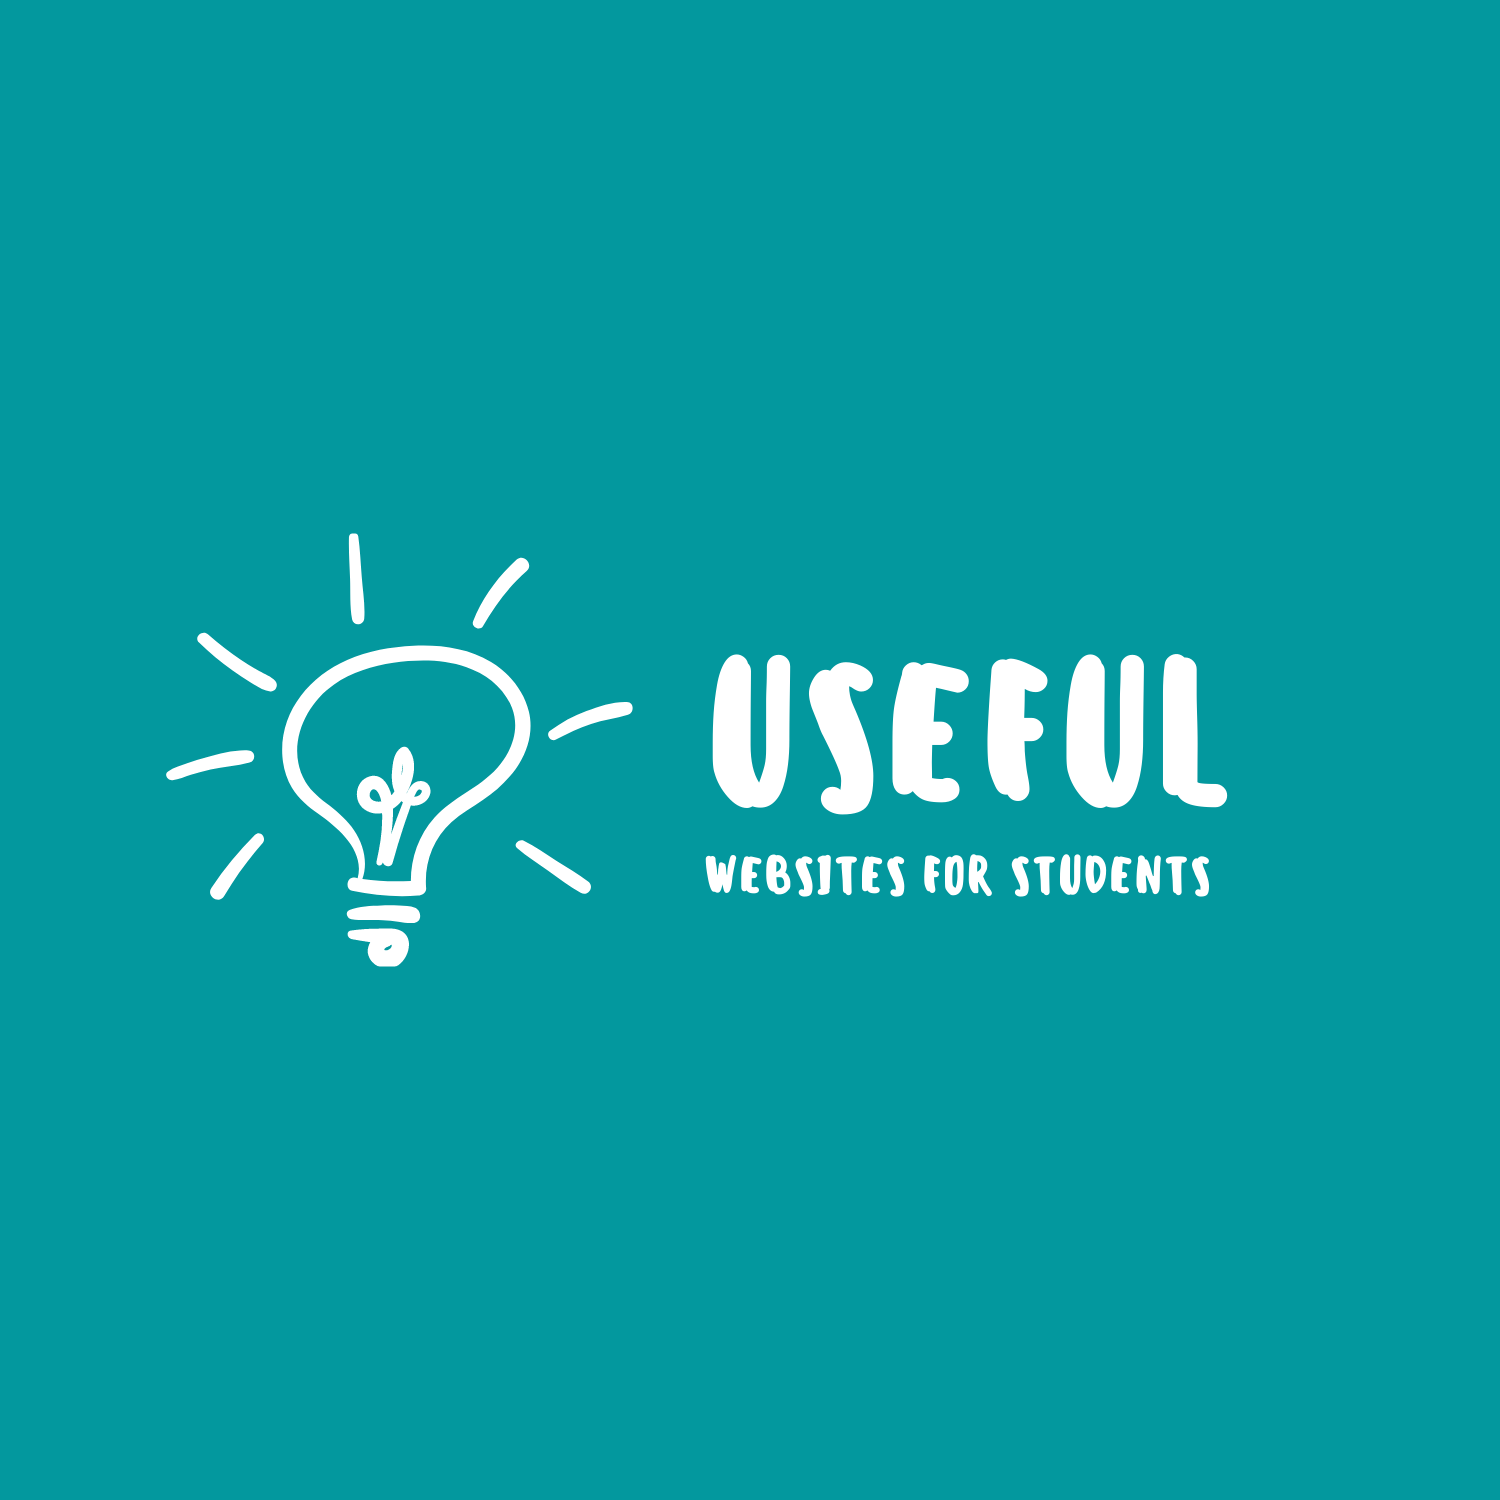 5 Useful Websites For Students